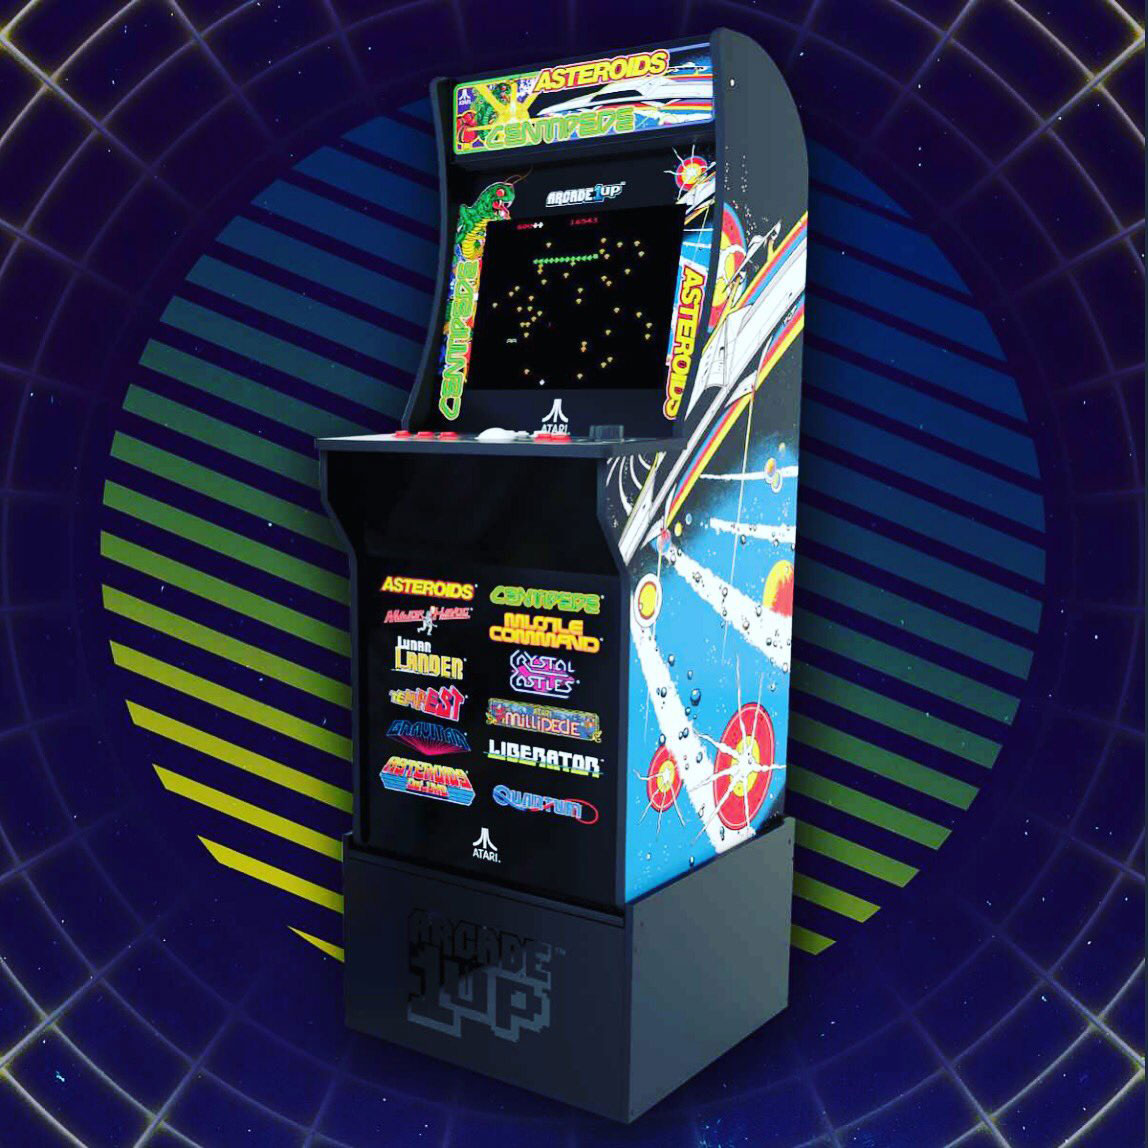 Arcade1Up - For $499 you can get a 12-game cabinet with a riser